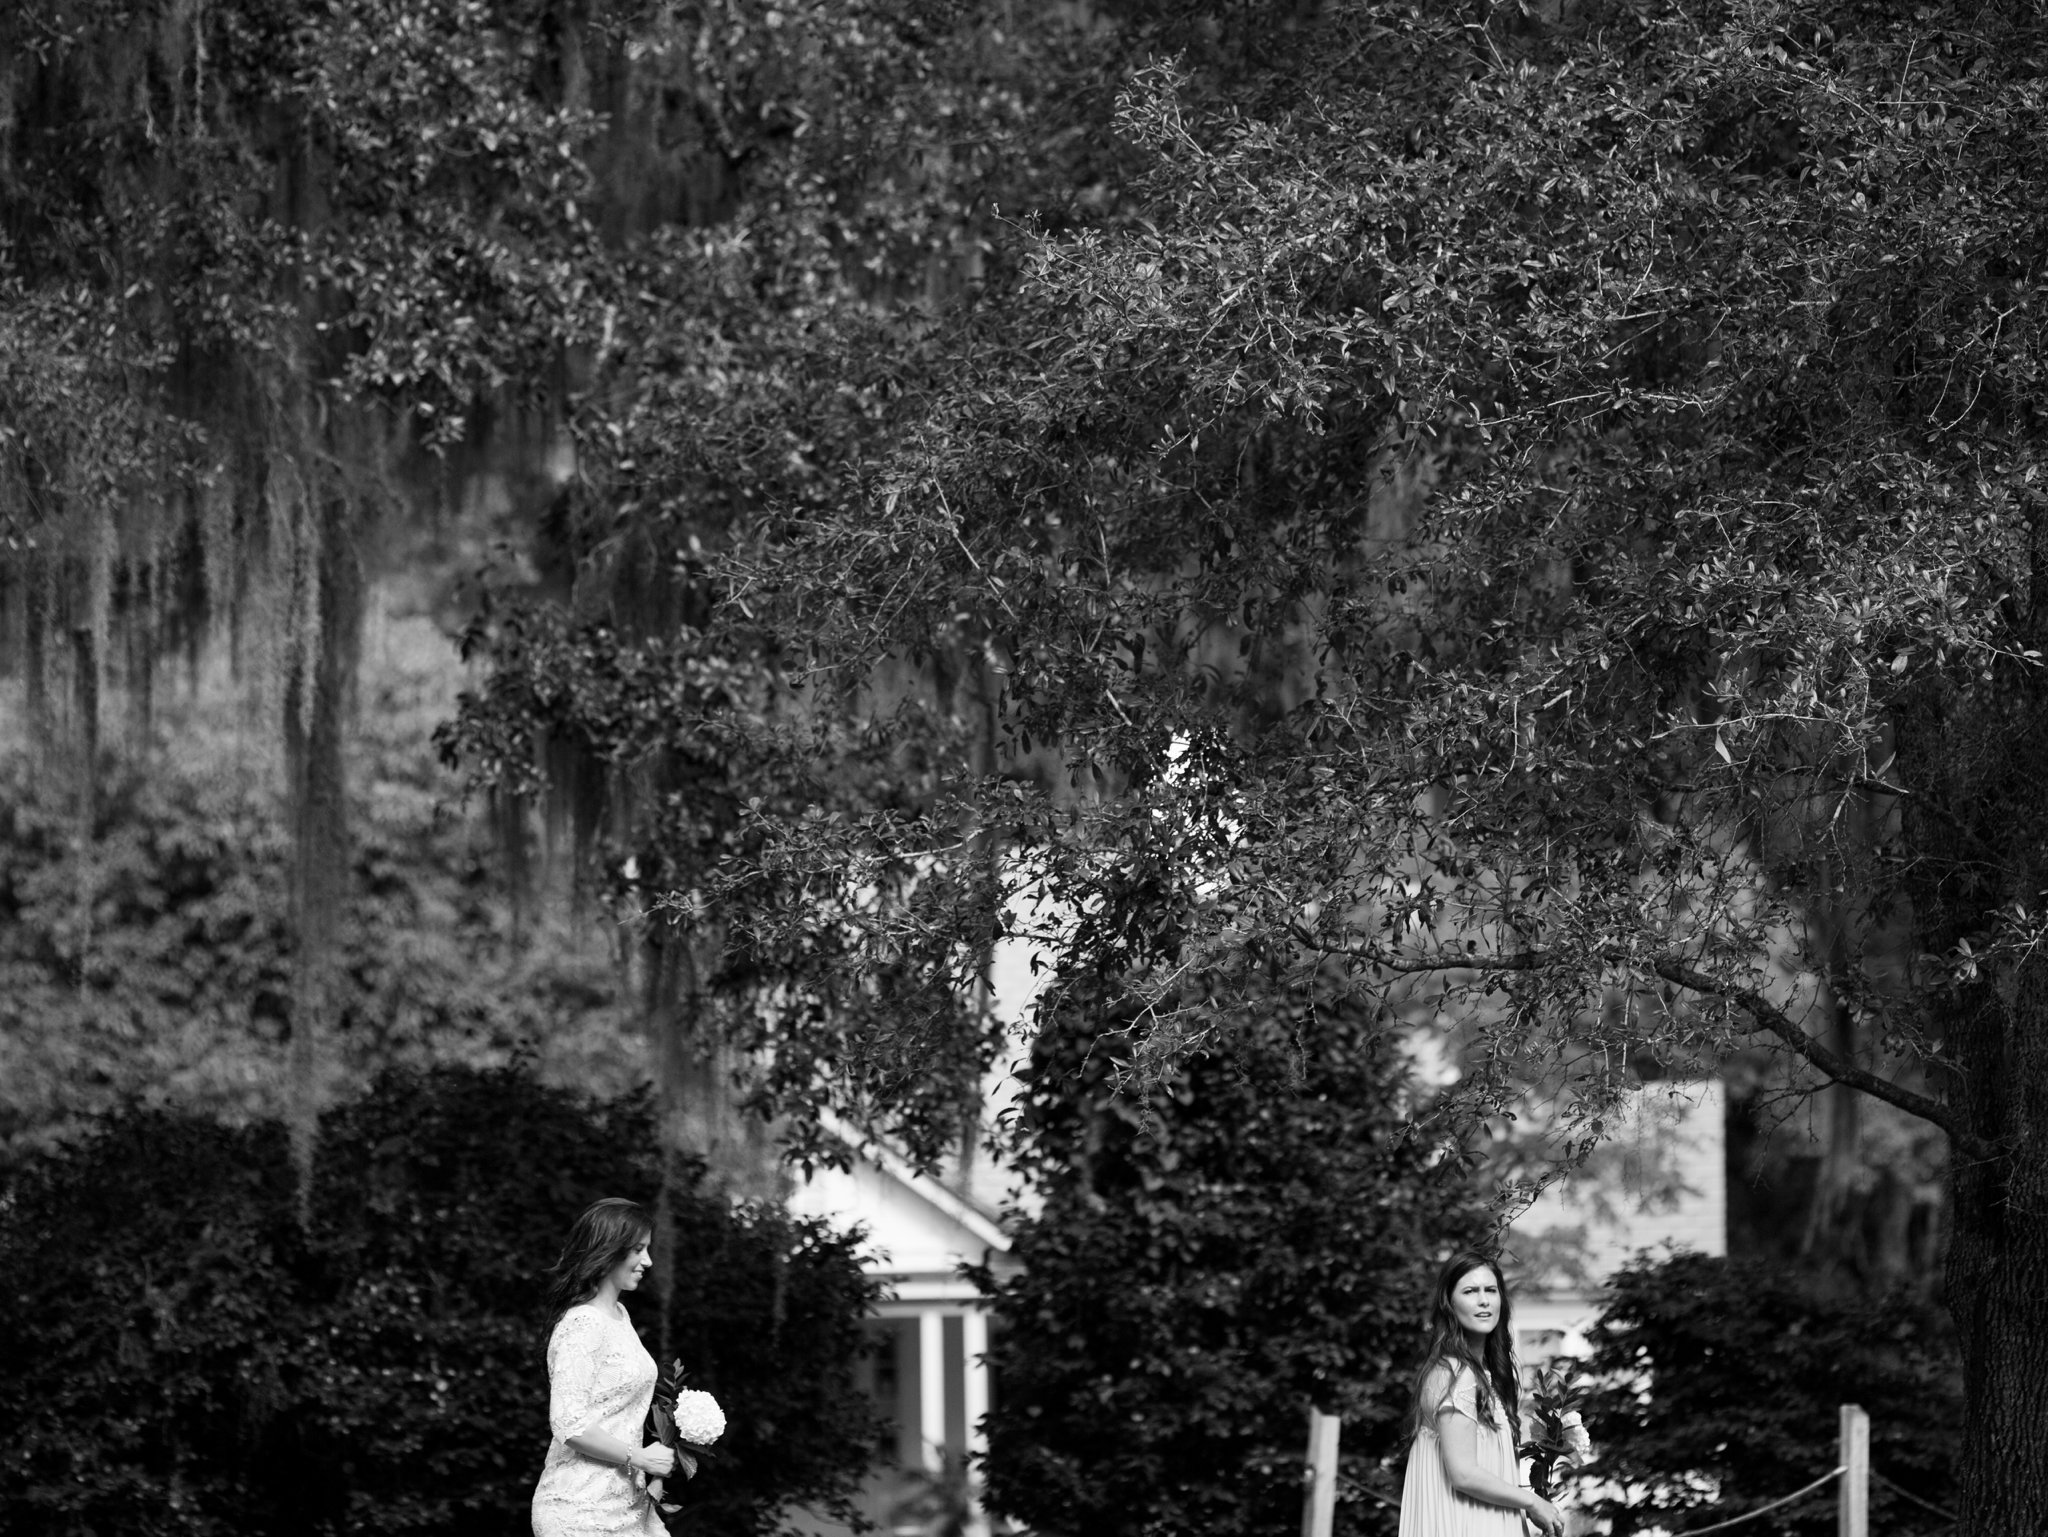 Persian-Jewish wedding goodwood wedding photographer tallahassee florida shannon griffin photography_0002.jpg